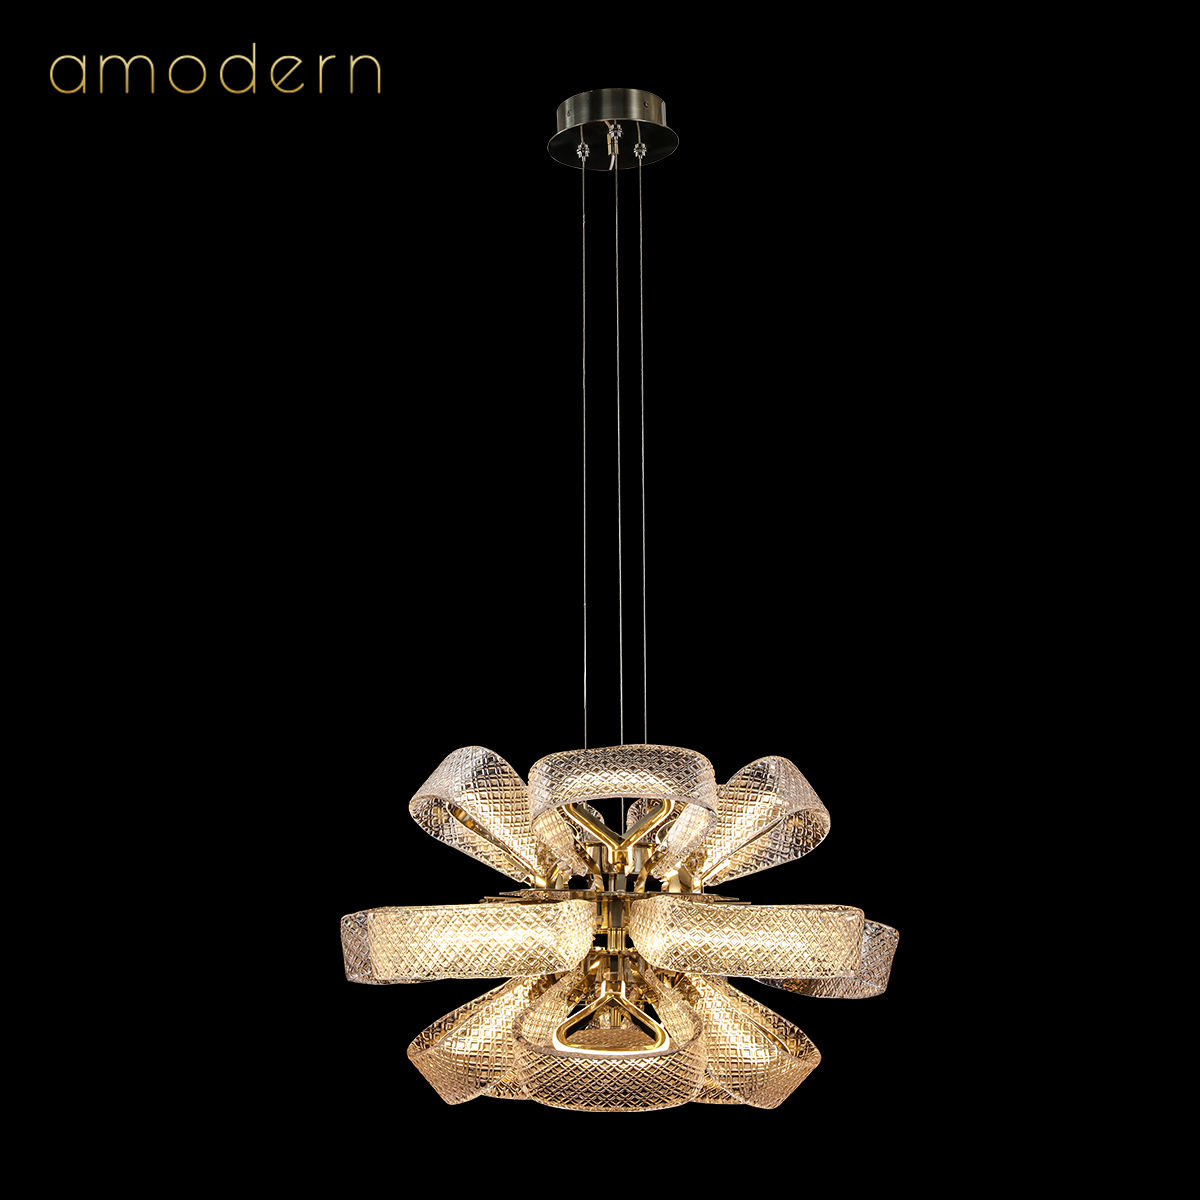 Classic Vintage New Designer Modern Living Room Dining chandeliers led pendant hanging lights